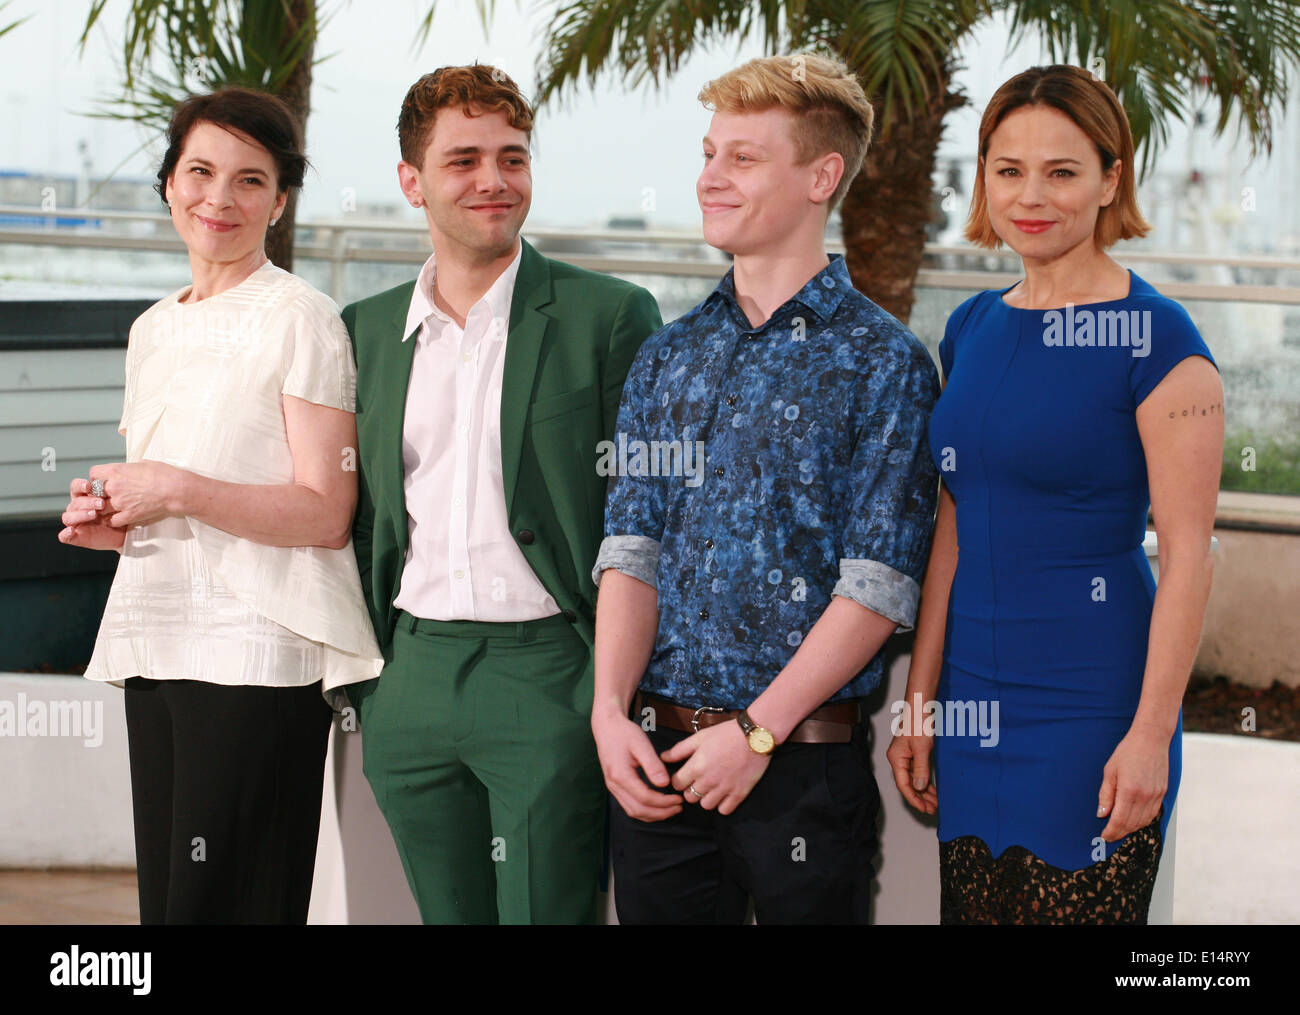 Cannes, France. 22nd May, 2014. Anne Dorval, Director Xavier Dolan, Antoine-Olivier Pilon and Suzanne Clément at the photo call for the film Mommy at the 67th Cannes Film Festival, Thursday 22nd May 2014, Cannes, France. Credit:  Doreen Kennedy/Alamy Live News - Stock Image